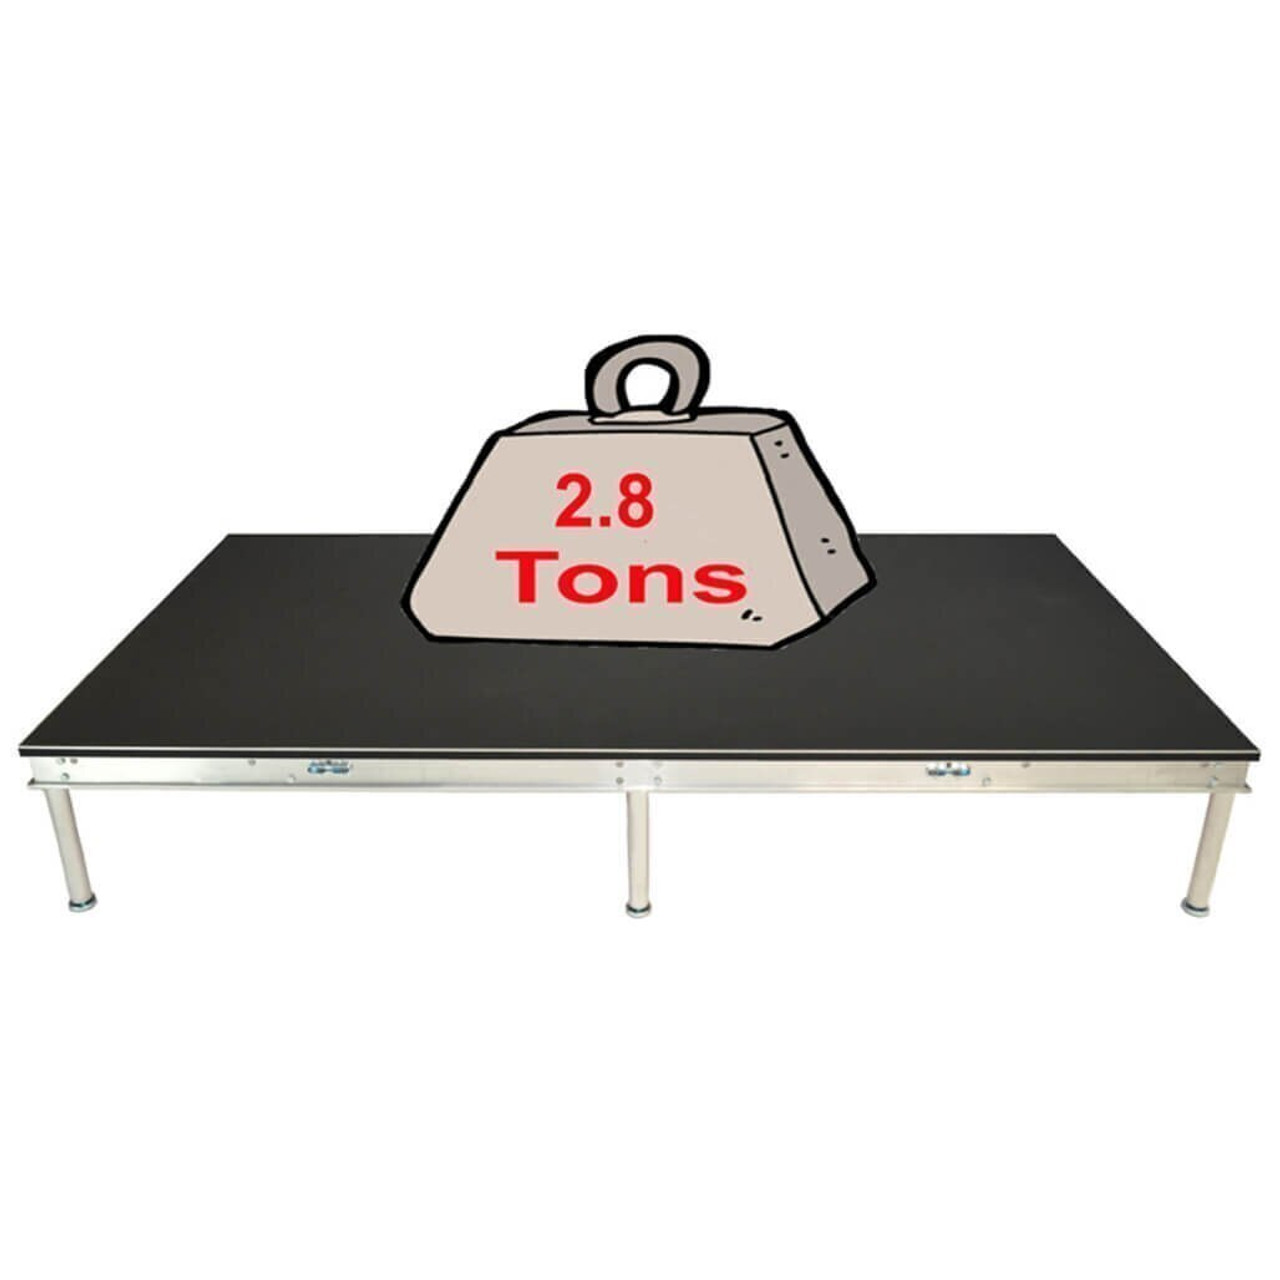 Top rated Quik Stage 8' x 20' High Portable Stage Package with Black Polyvinyl Non-Skid Surface. Additional Heights and Surfaces Available - Holds 2.8 tons per 4 x 8 or 1.4 tons per 4 x 4 when spread out evenly